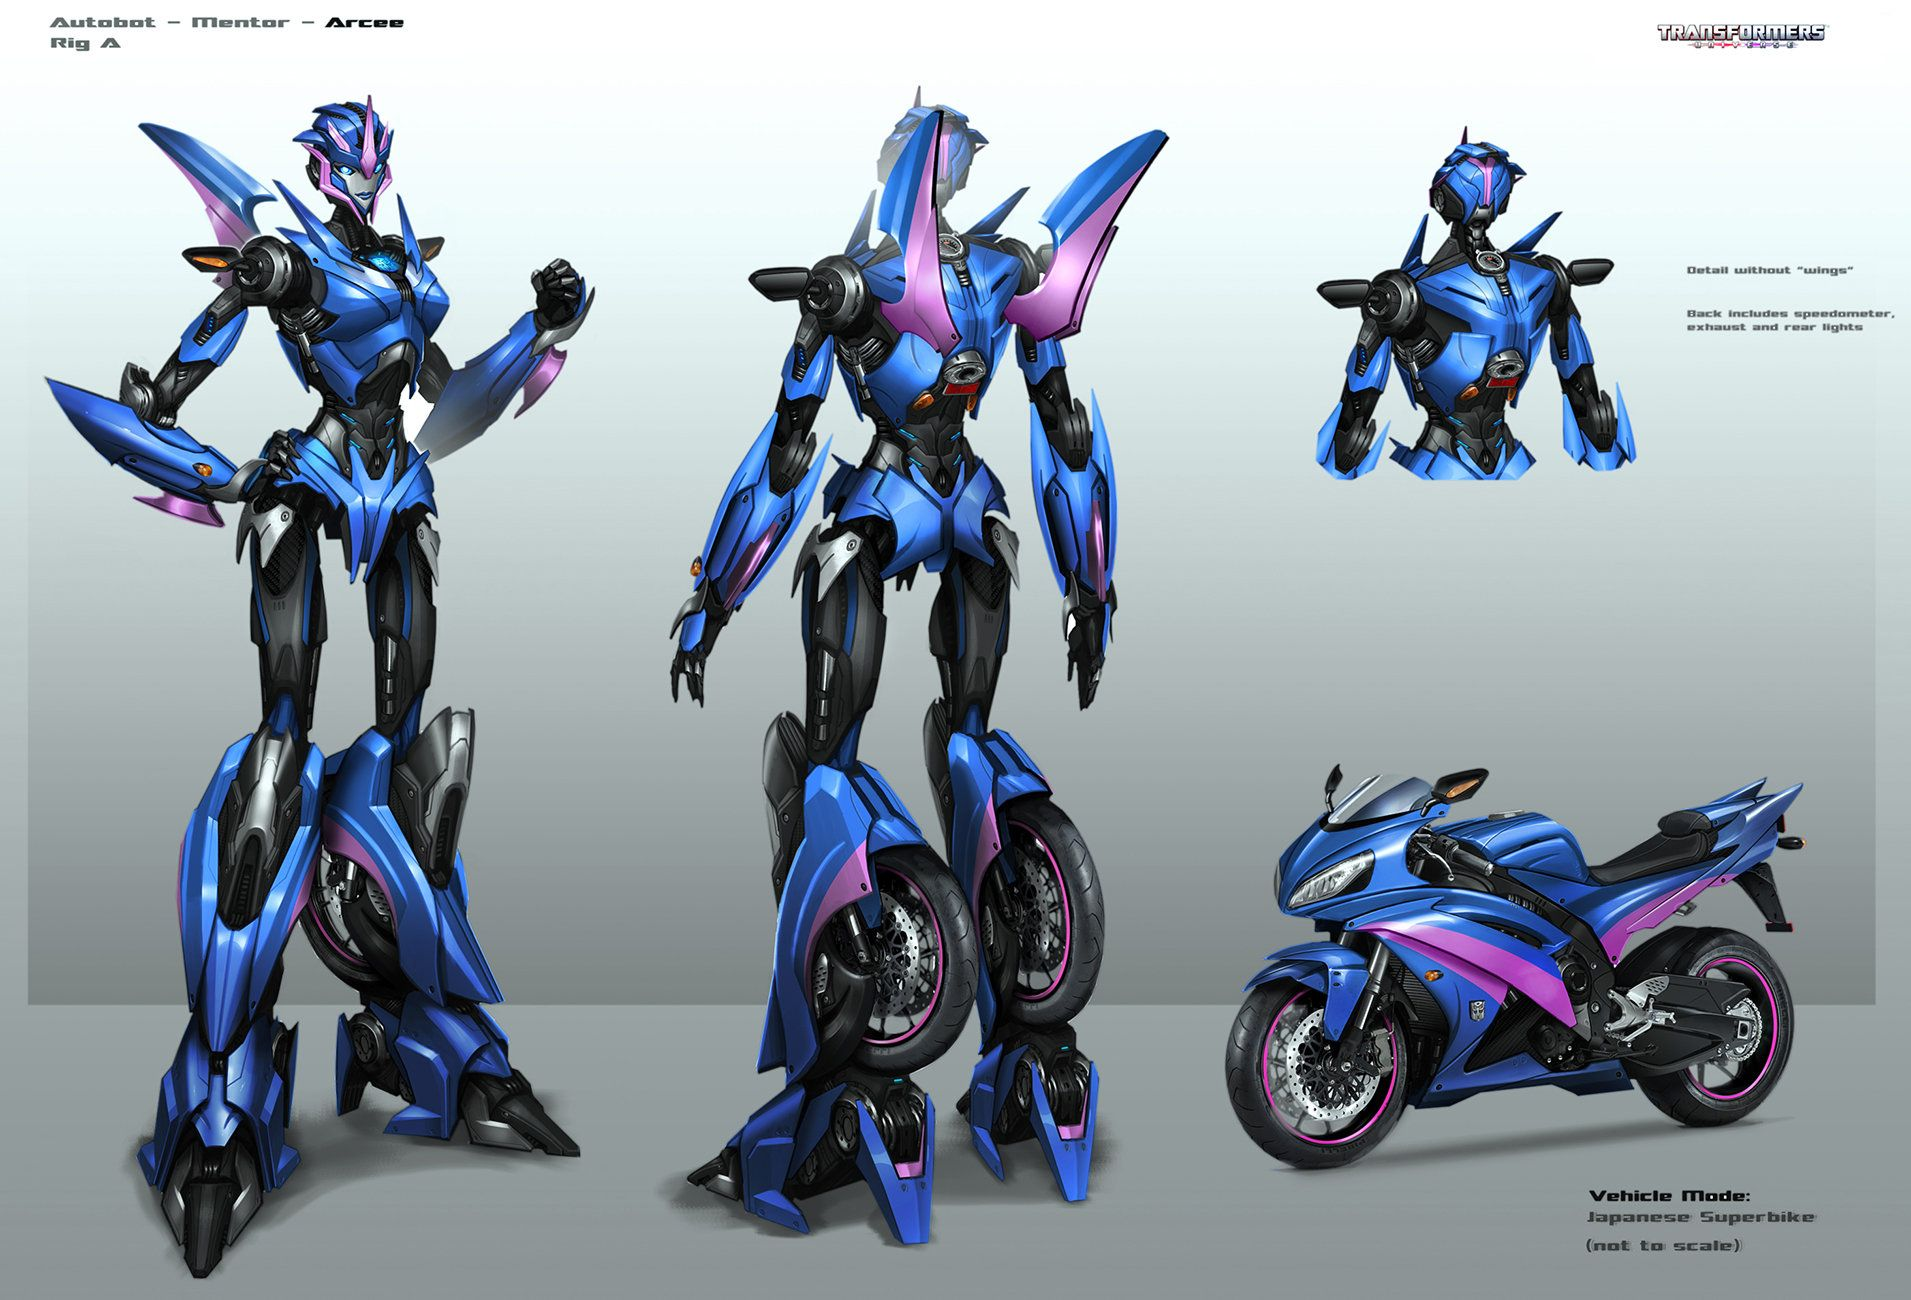 http://www.artstation.com/artwork/transformers-arcee ...